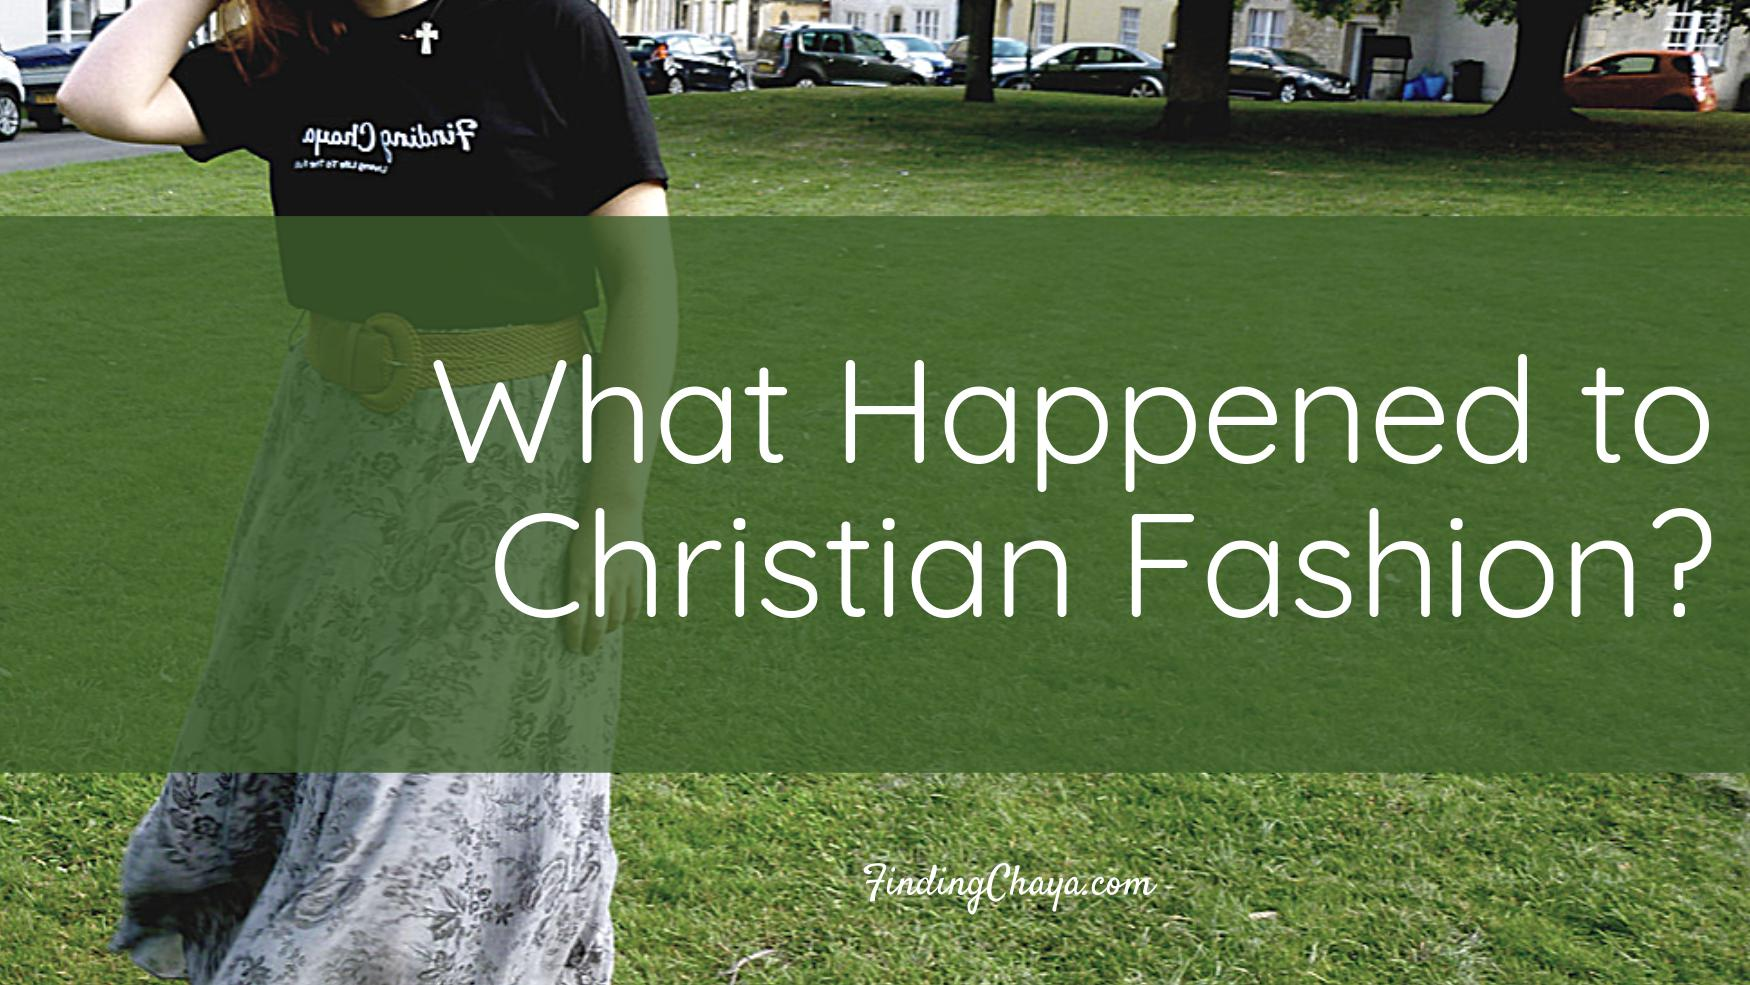 What Happened to Christian Fashion?